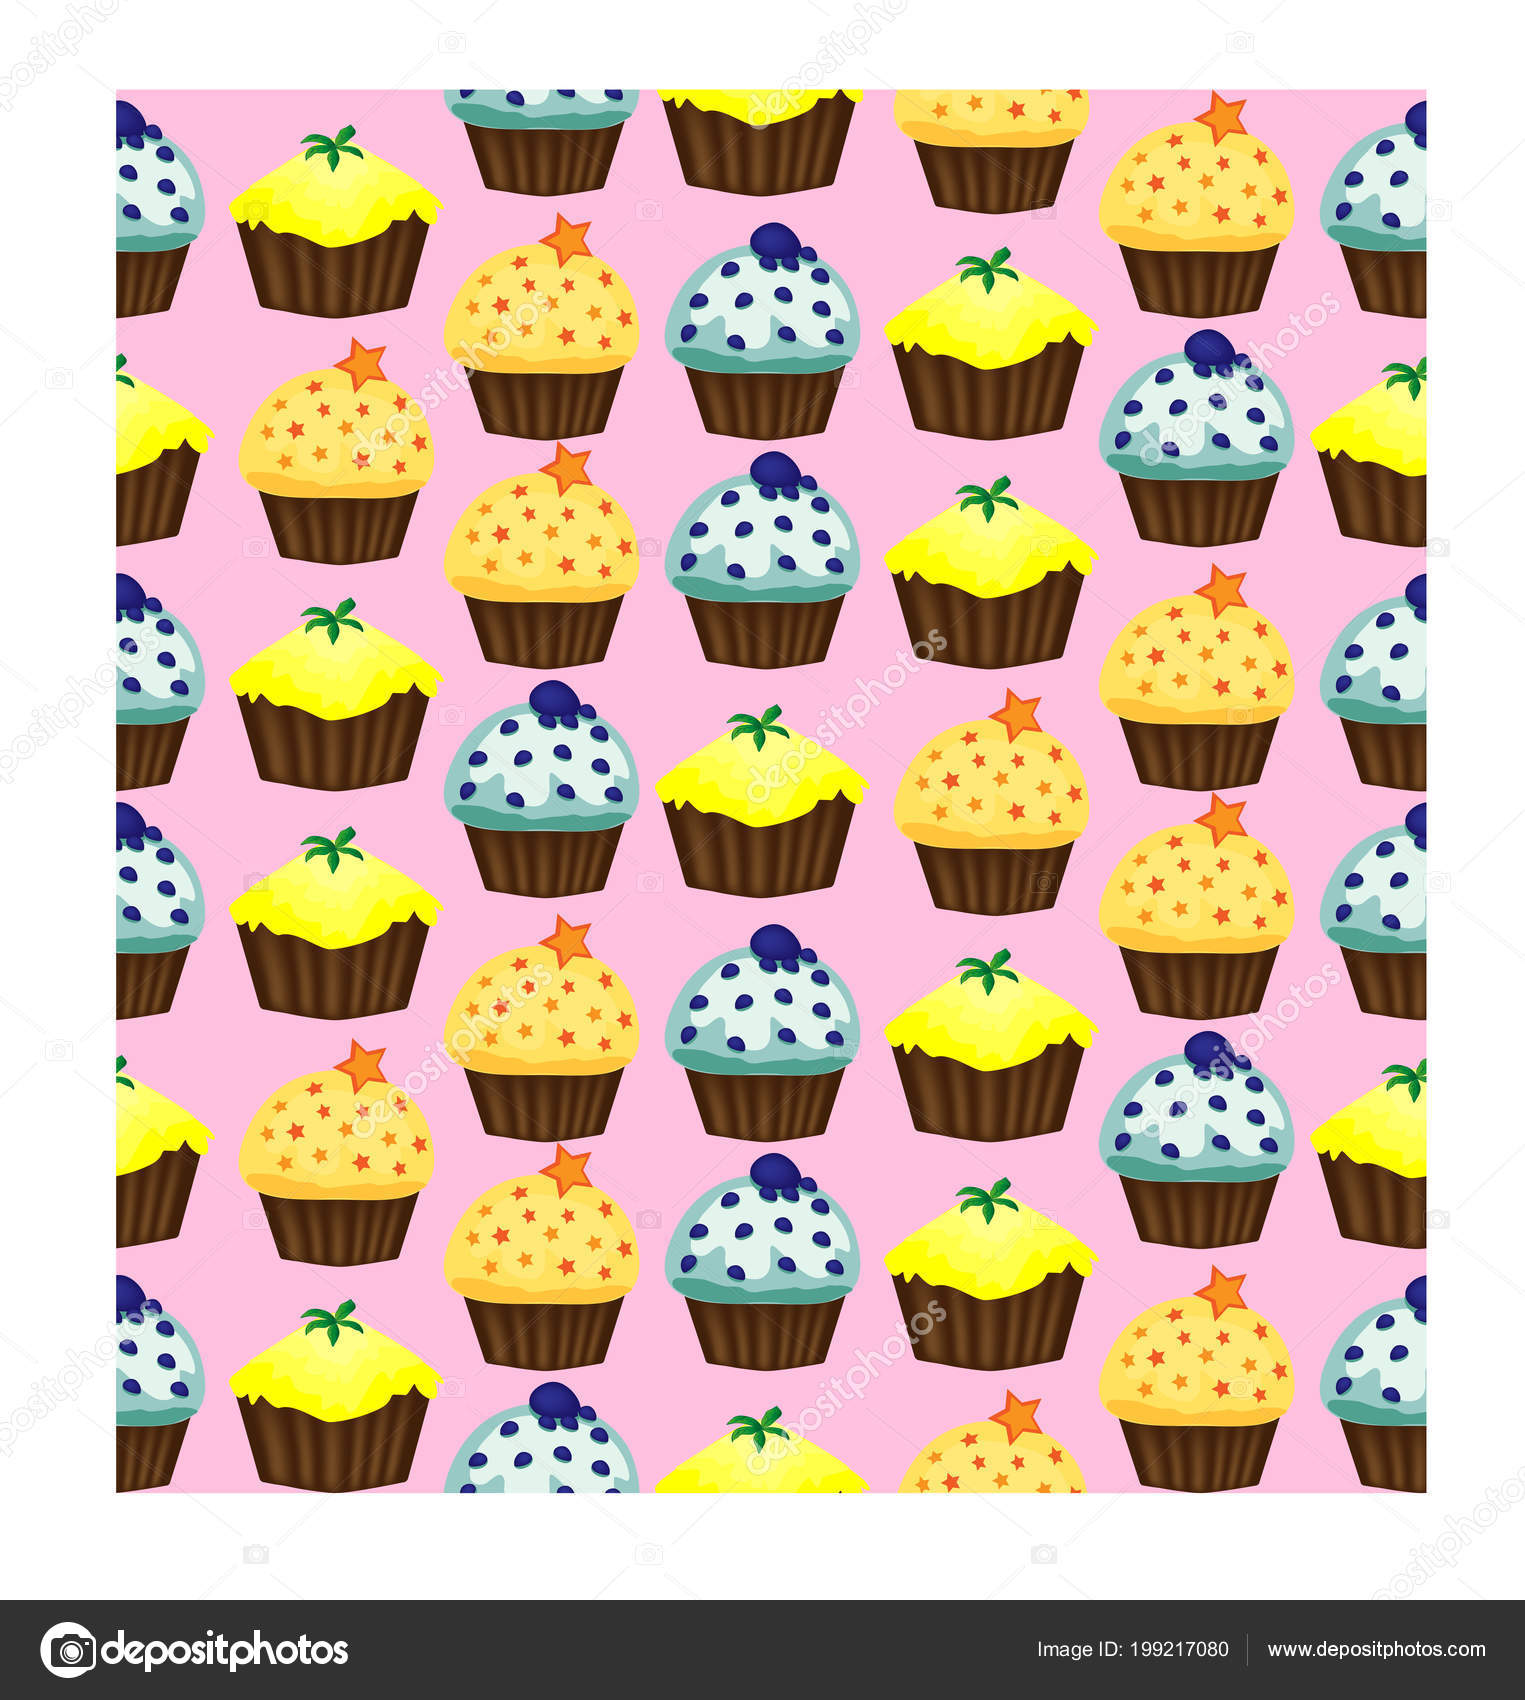 Birthday Background Seamless Pattern With Cupcakes And Muffins Cute Cartoon Characters Emoji Kawaii Vector Illustration Stock